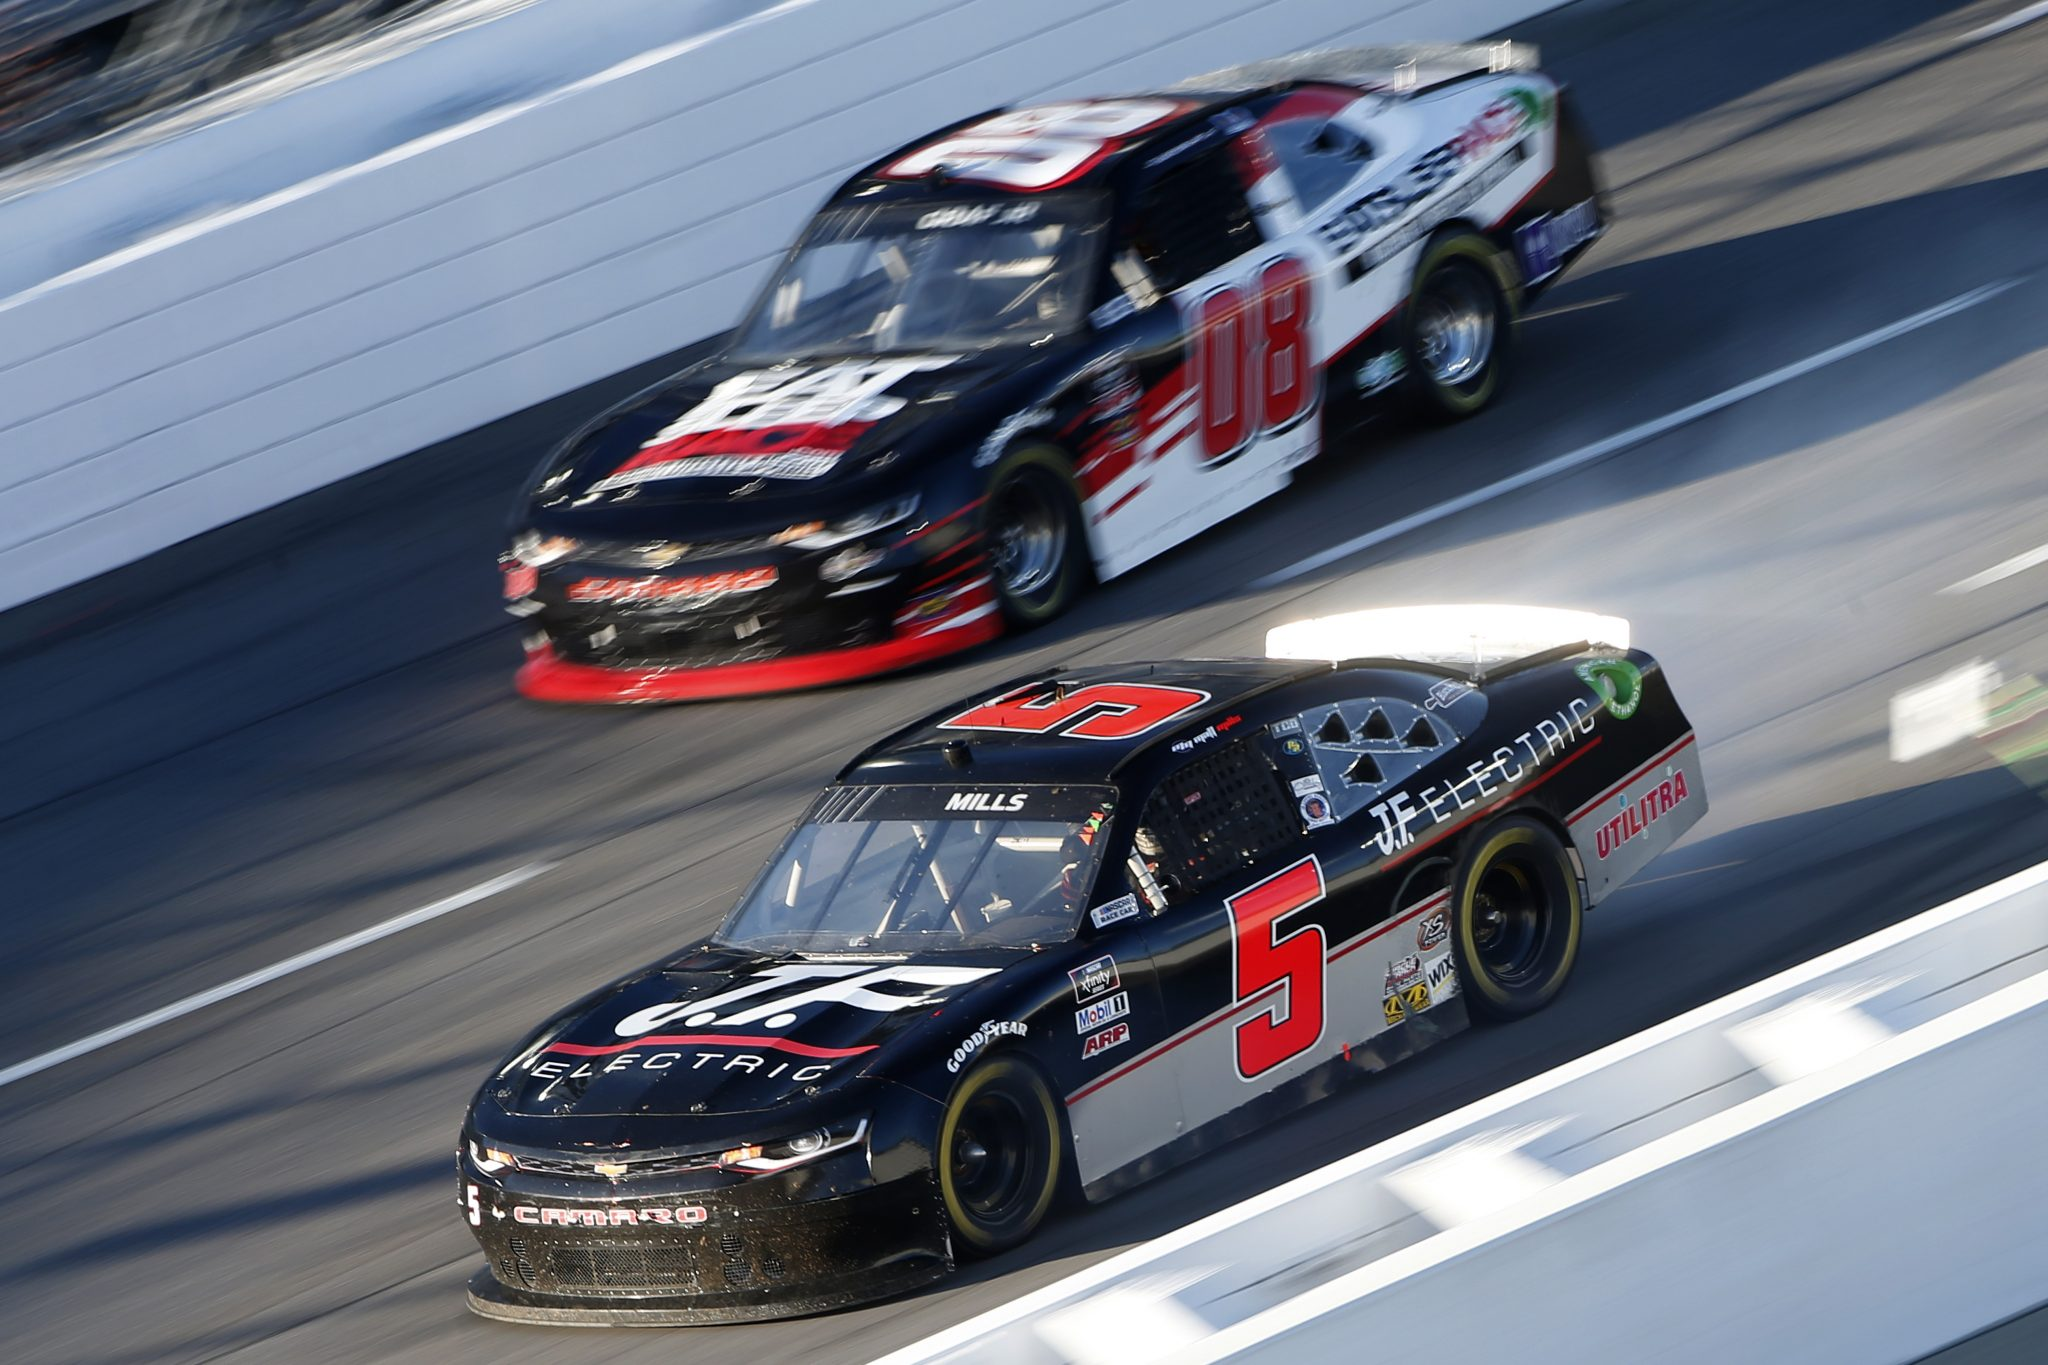 MARTINSVILLE, VIRGINIA - OCTOBER 31: Matt Mills, driver of the #5 JF Electric Toyota, and Joe Graf Jr, driver of the #08 EAT SLEEP RACE Chevrolet, race during the NASCAR Xfinity Series Draft Top 250 at Martinsville Speedway on October 31, 2020 in Martinsville, Virginia. (Photo by Brian Lawdermilk/Getty Images) | Getty Images